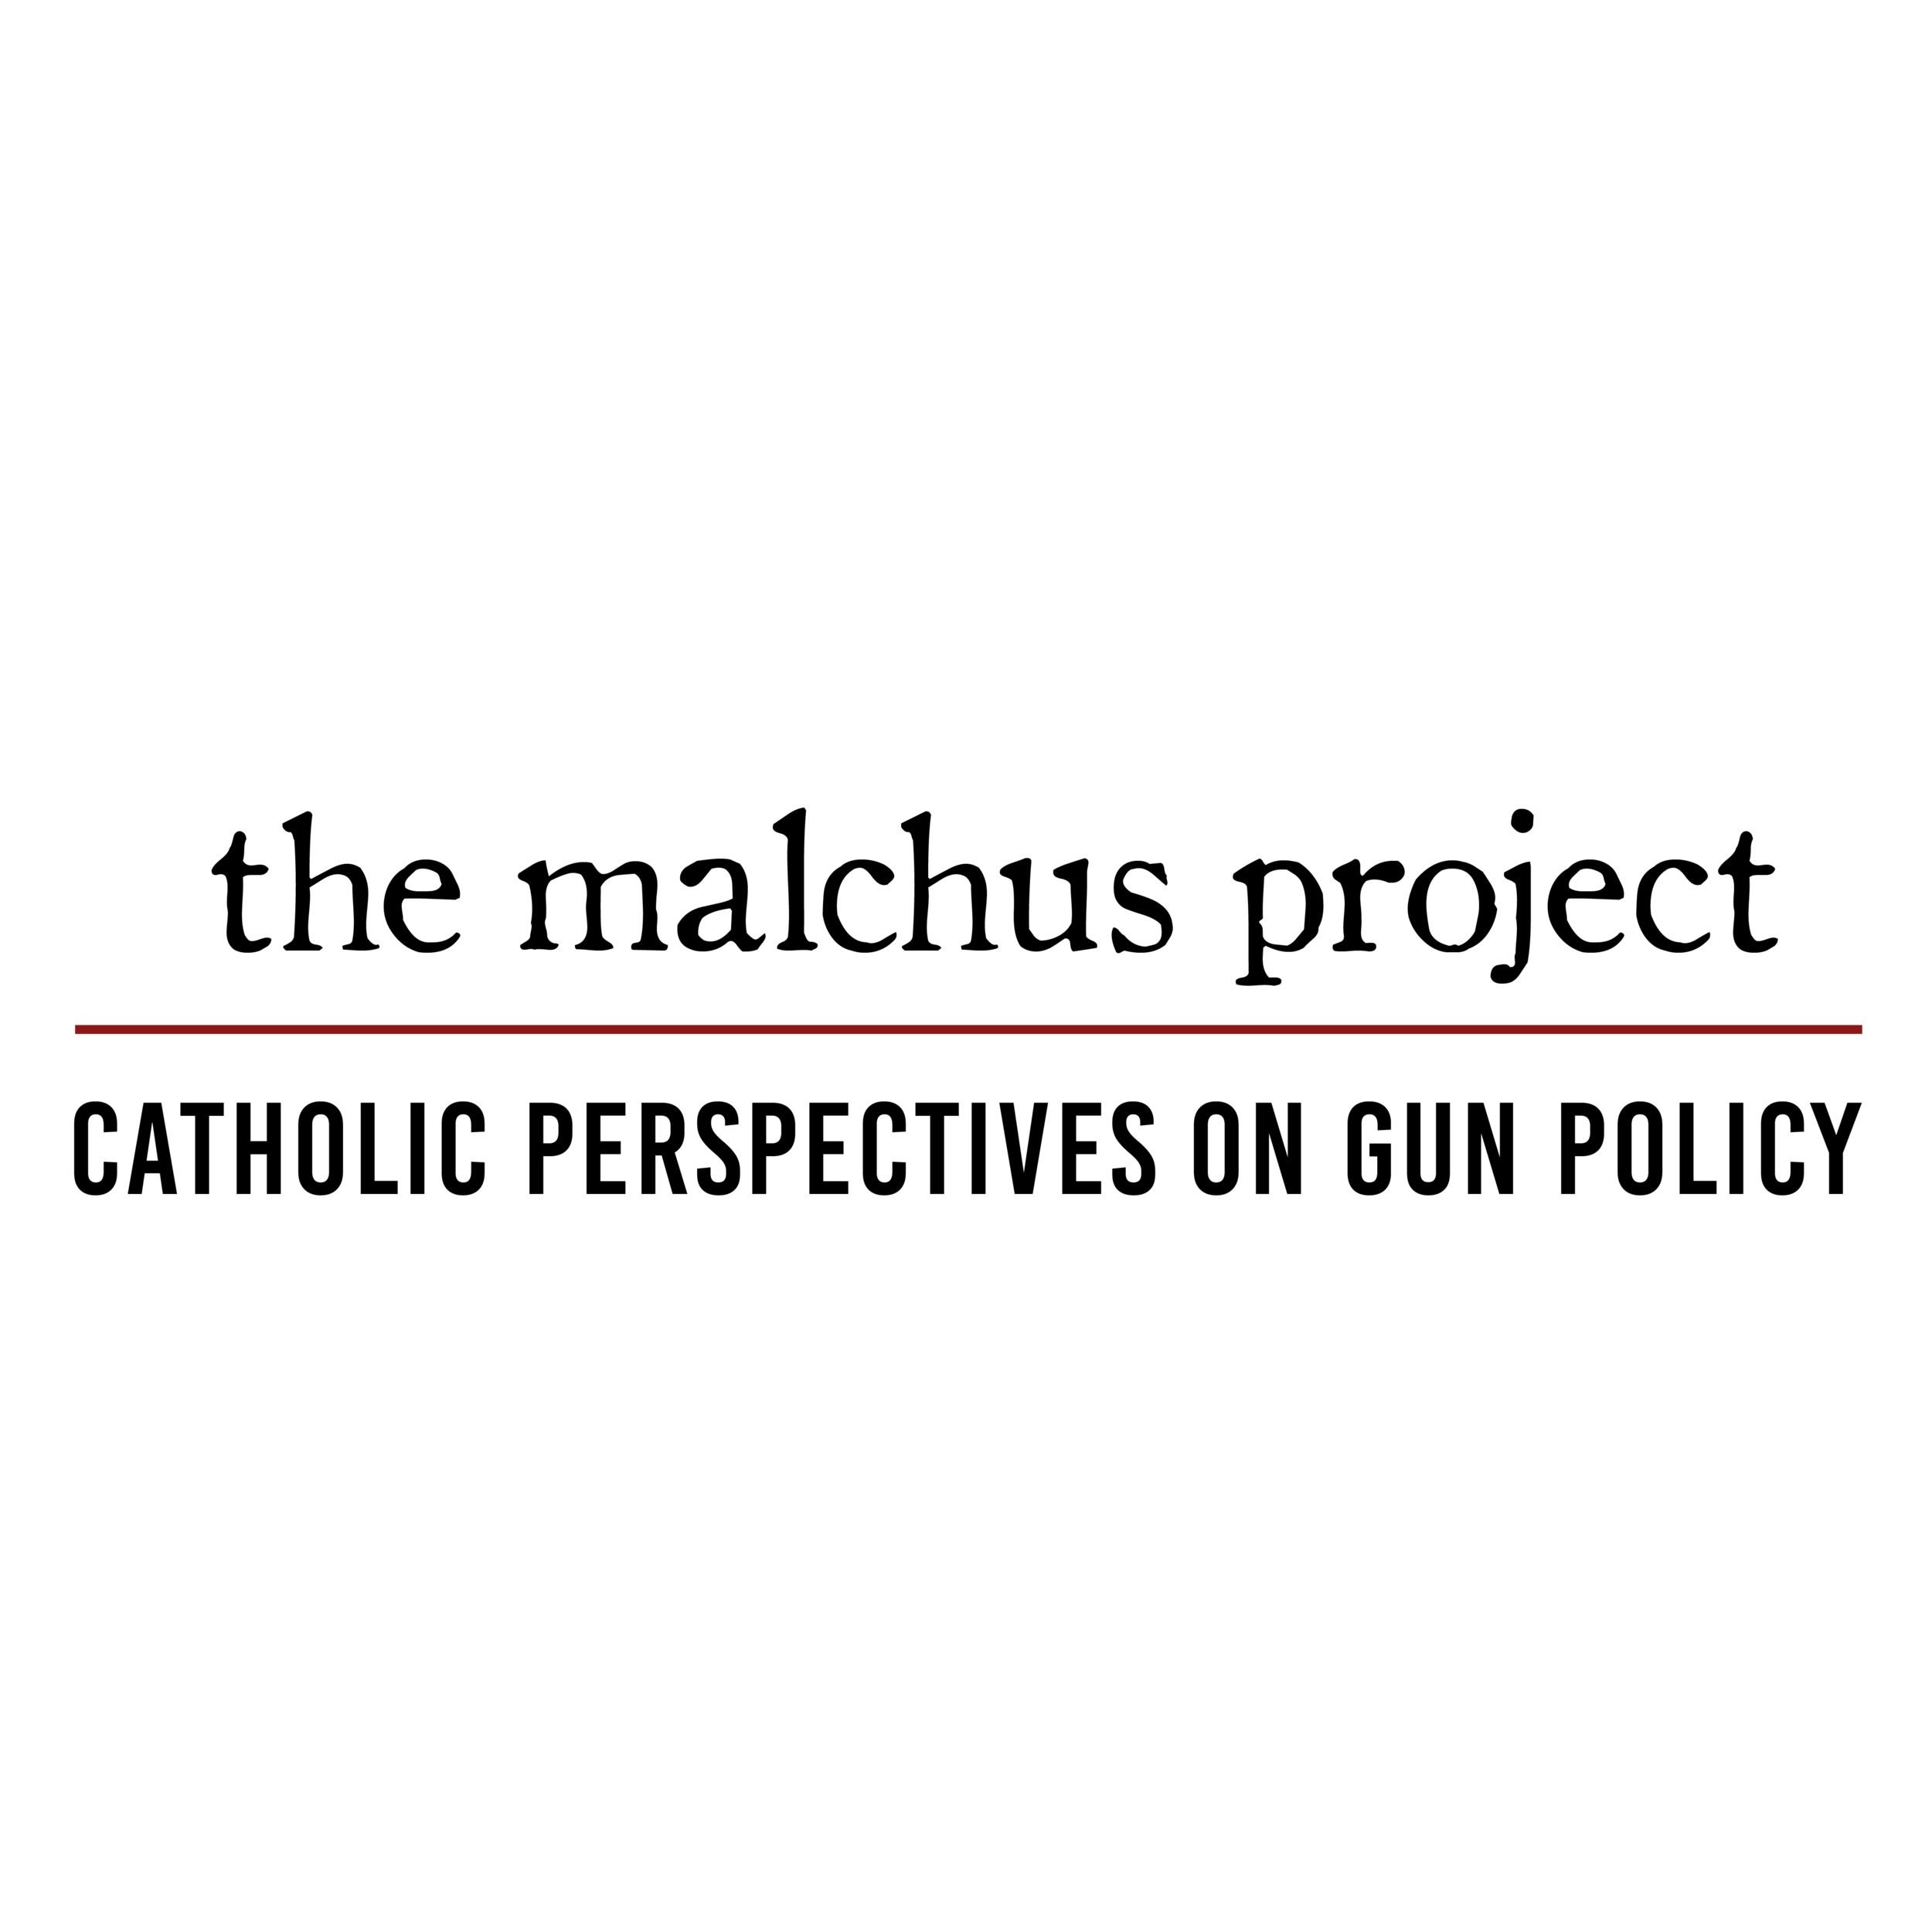 the_malchus_project_final_transparent-06.jpg